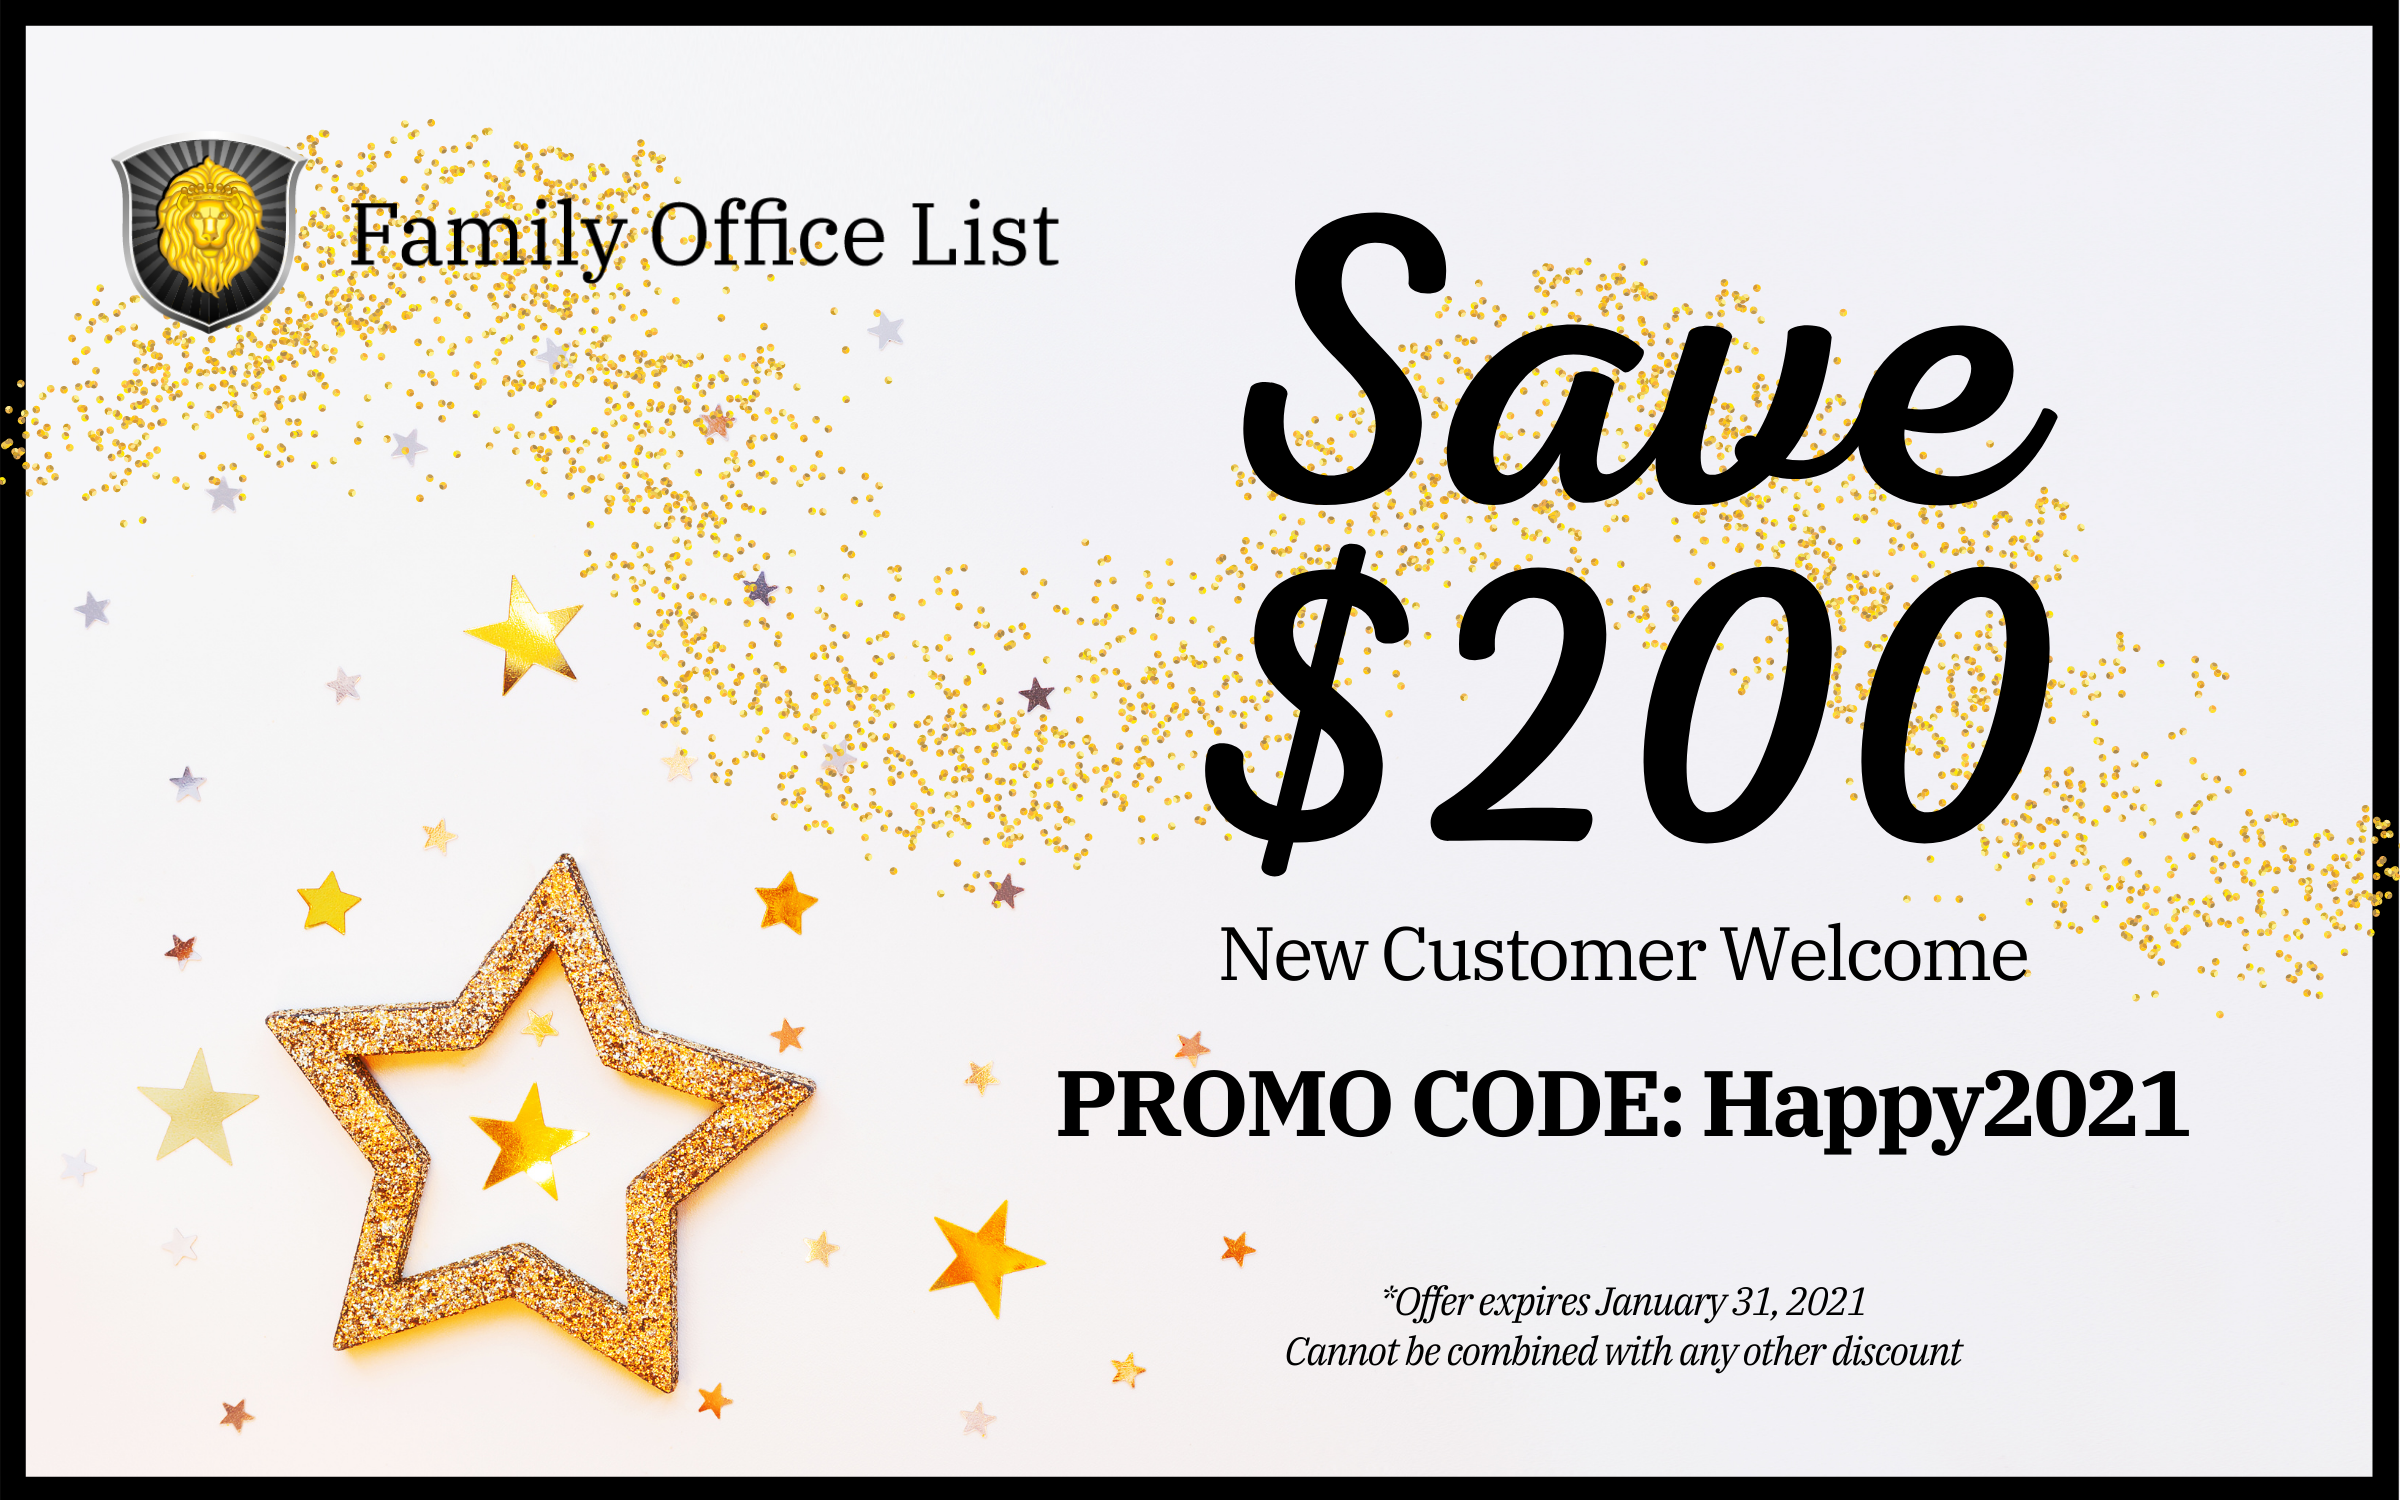 Family Office List - New Customers Save $200 - expires 1/31/21